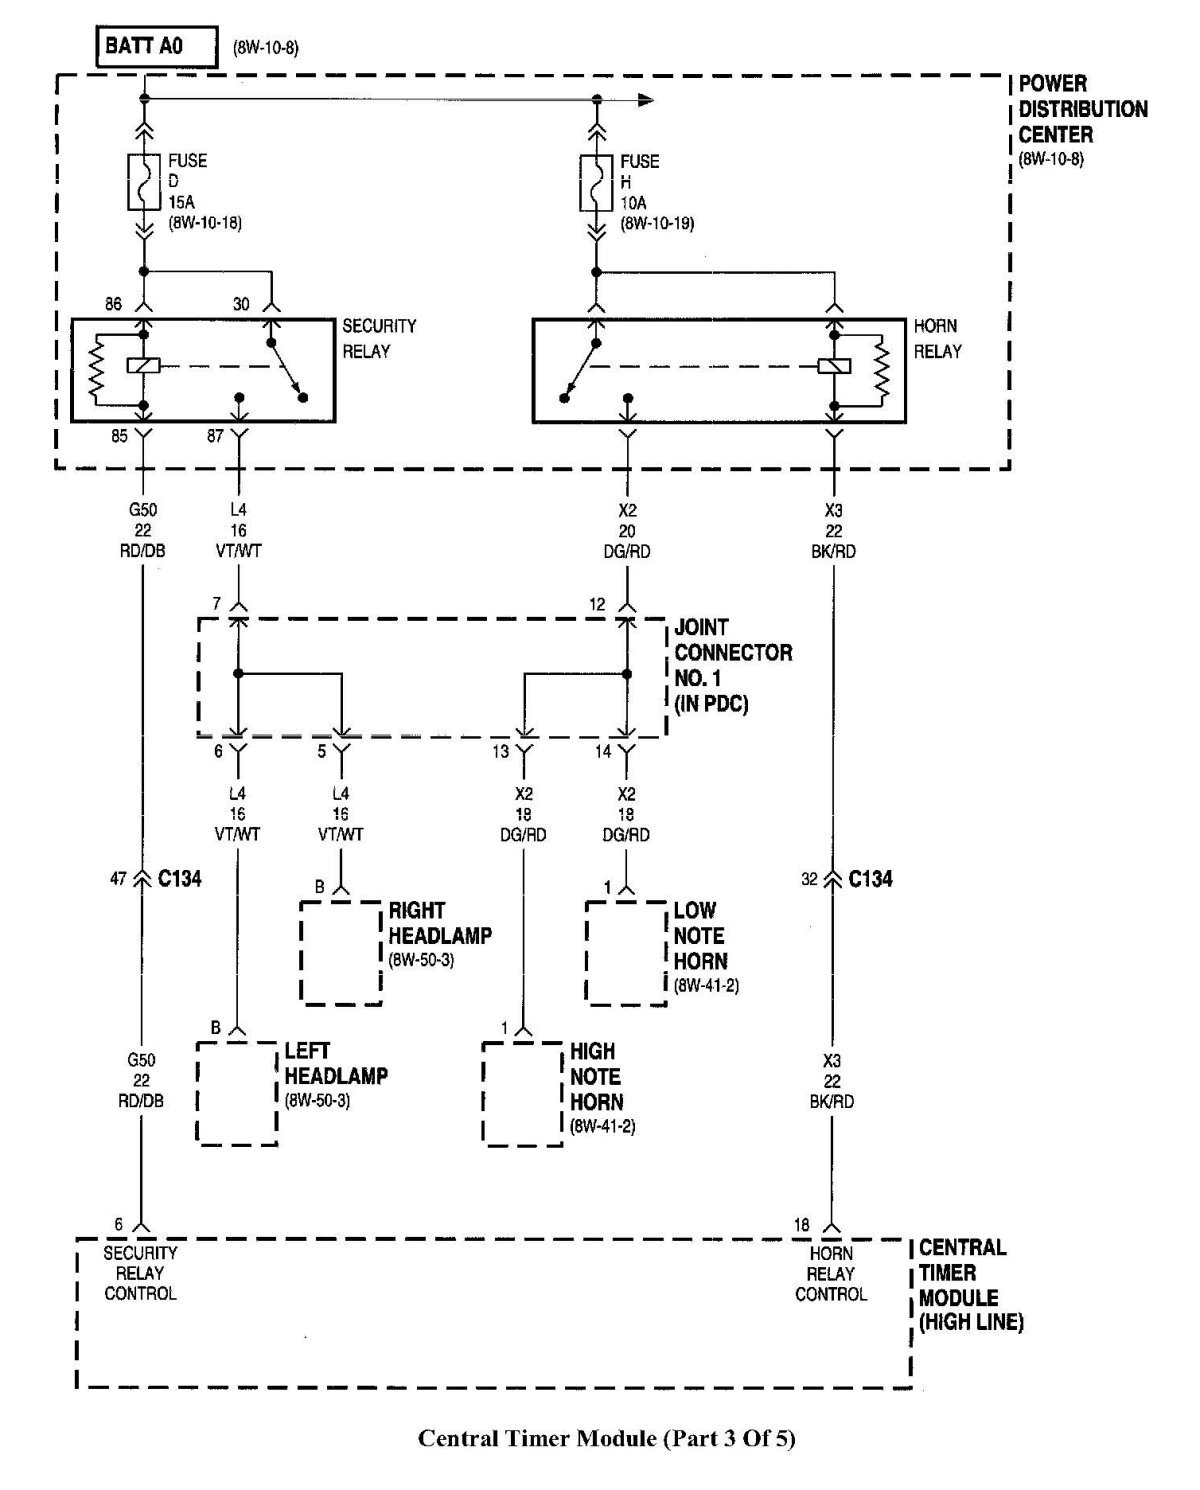 2005 Dodge Ram 2500 Trailer Wiring Diagram